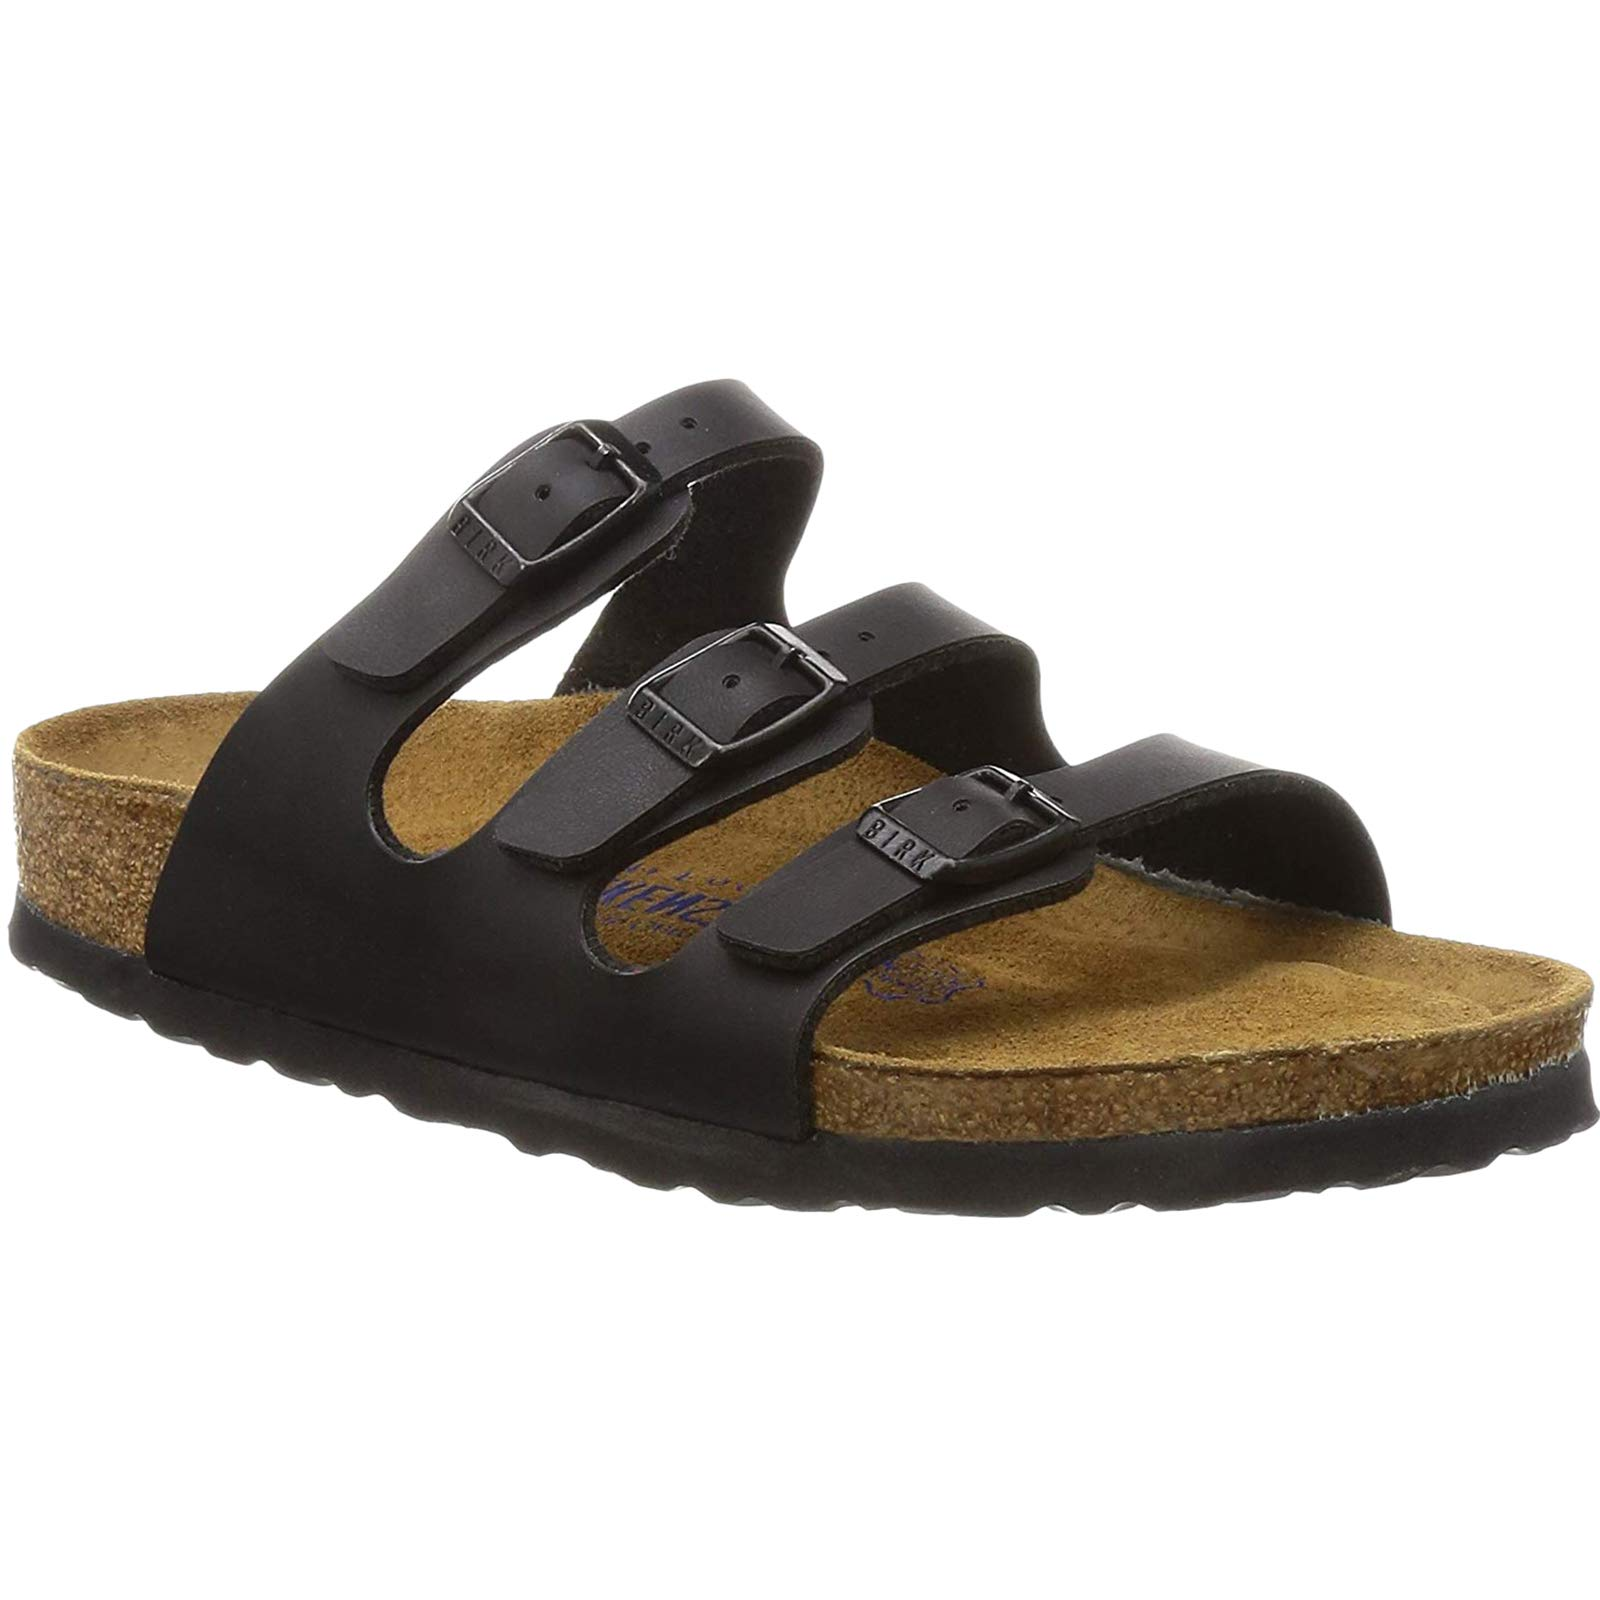 Birkenstock Women's Florida Soft Footbed Birko-Flor  Black Sandals - 37 N EU / 6-6.5 2A(N) US Womens